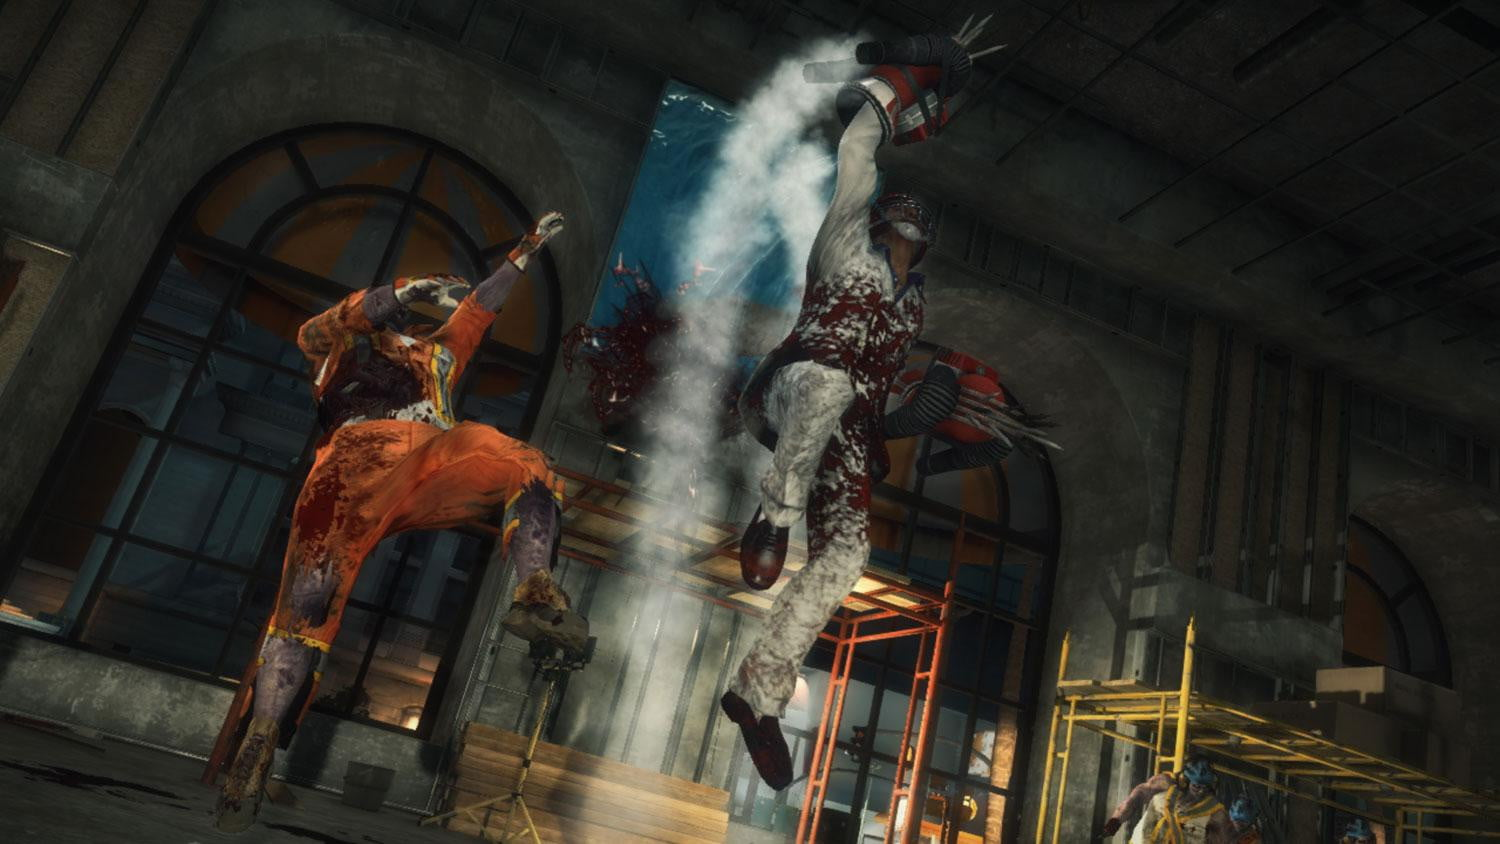 Dead rising 3 review digital trends dead rising 3 screenshot 8 malvernweather Images